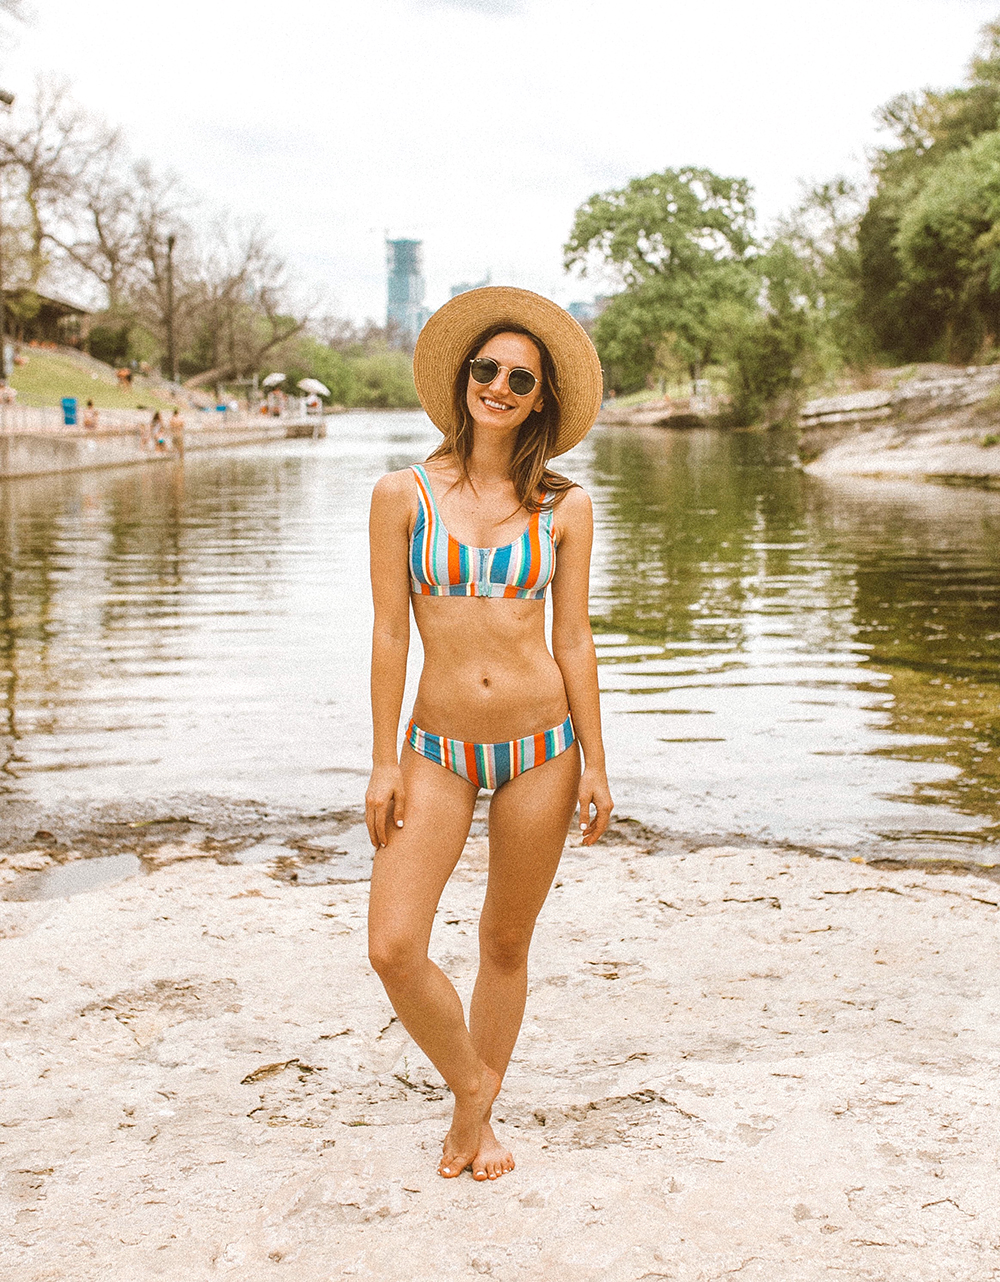 livvyland-blog-olivia-watson-austin-texas-barton-springs-pool-fashion-blogger-billabong-rainbow-swimsuit-13